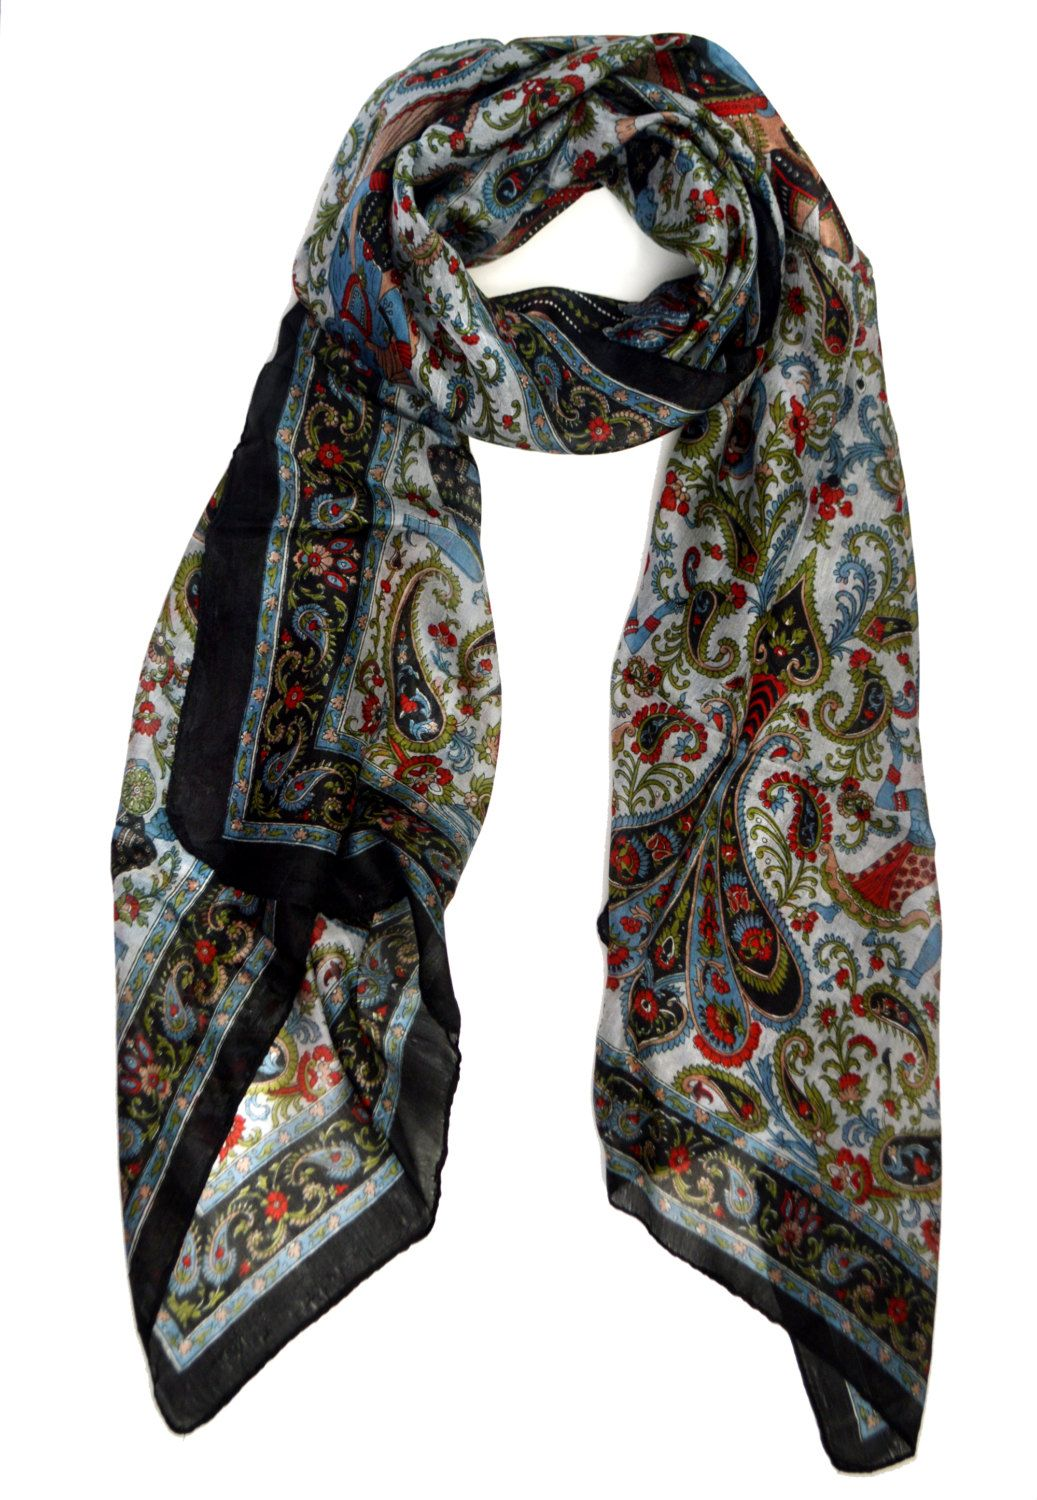 Paisley Silk Scarf,Black blue and red wrap,100% Silk